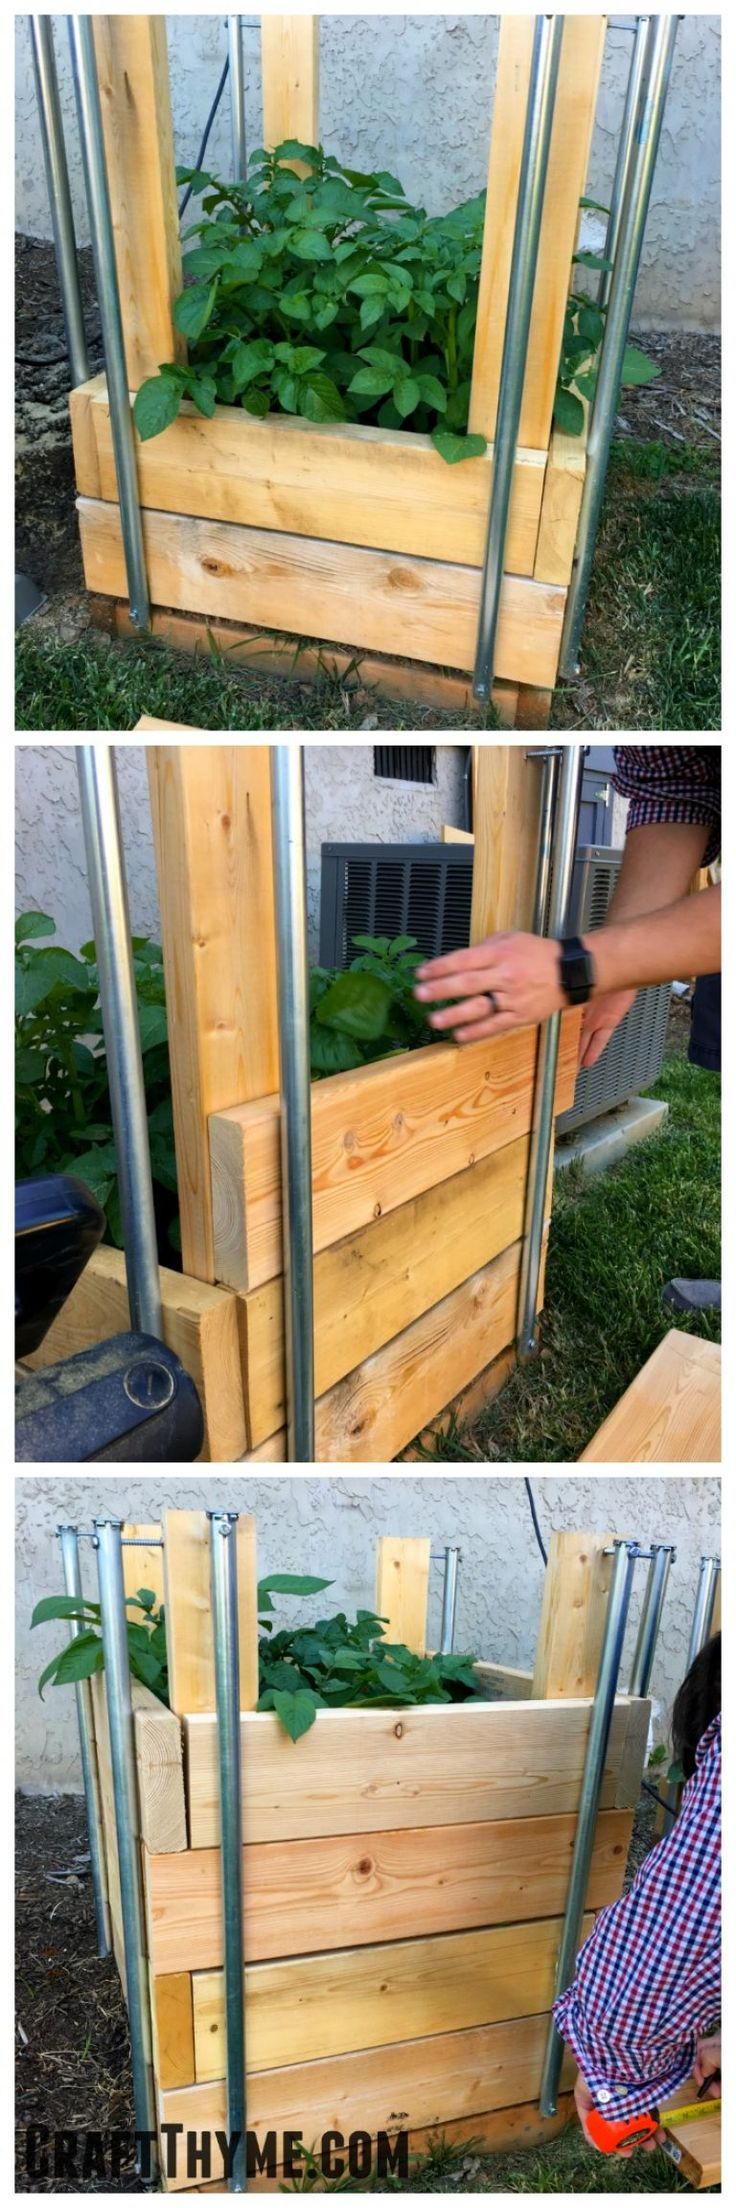 Short on garden space? Then a potato tower or potato box may be just what you need and we can show you just how to build a grow tower.   These potato boxes feature slide in and out slats for easy to harvest potatoes!